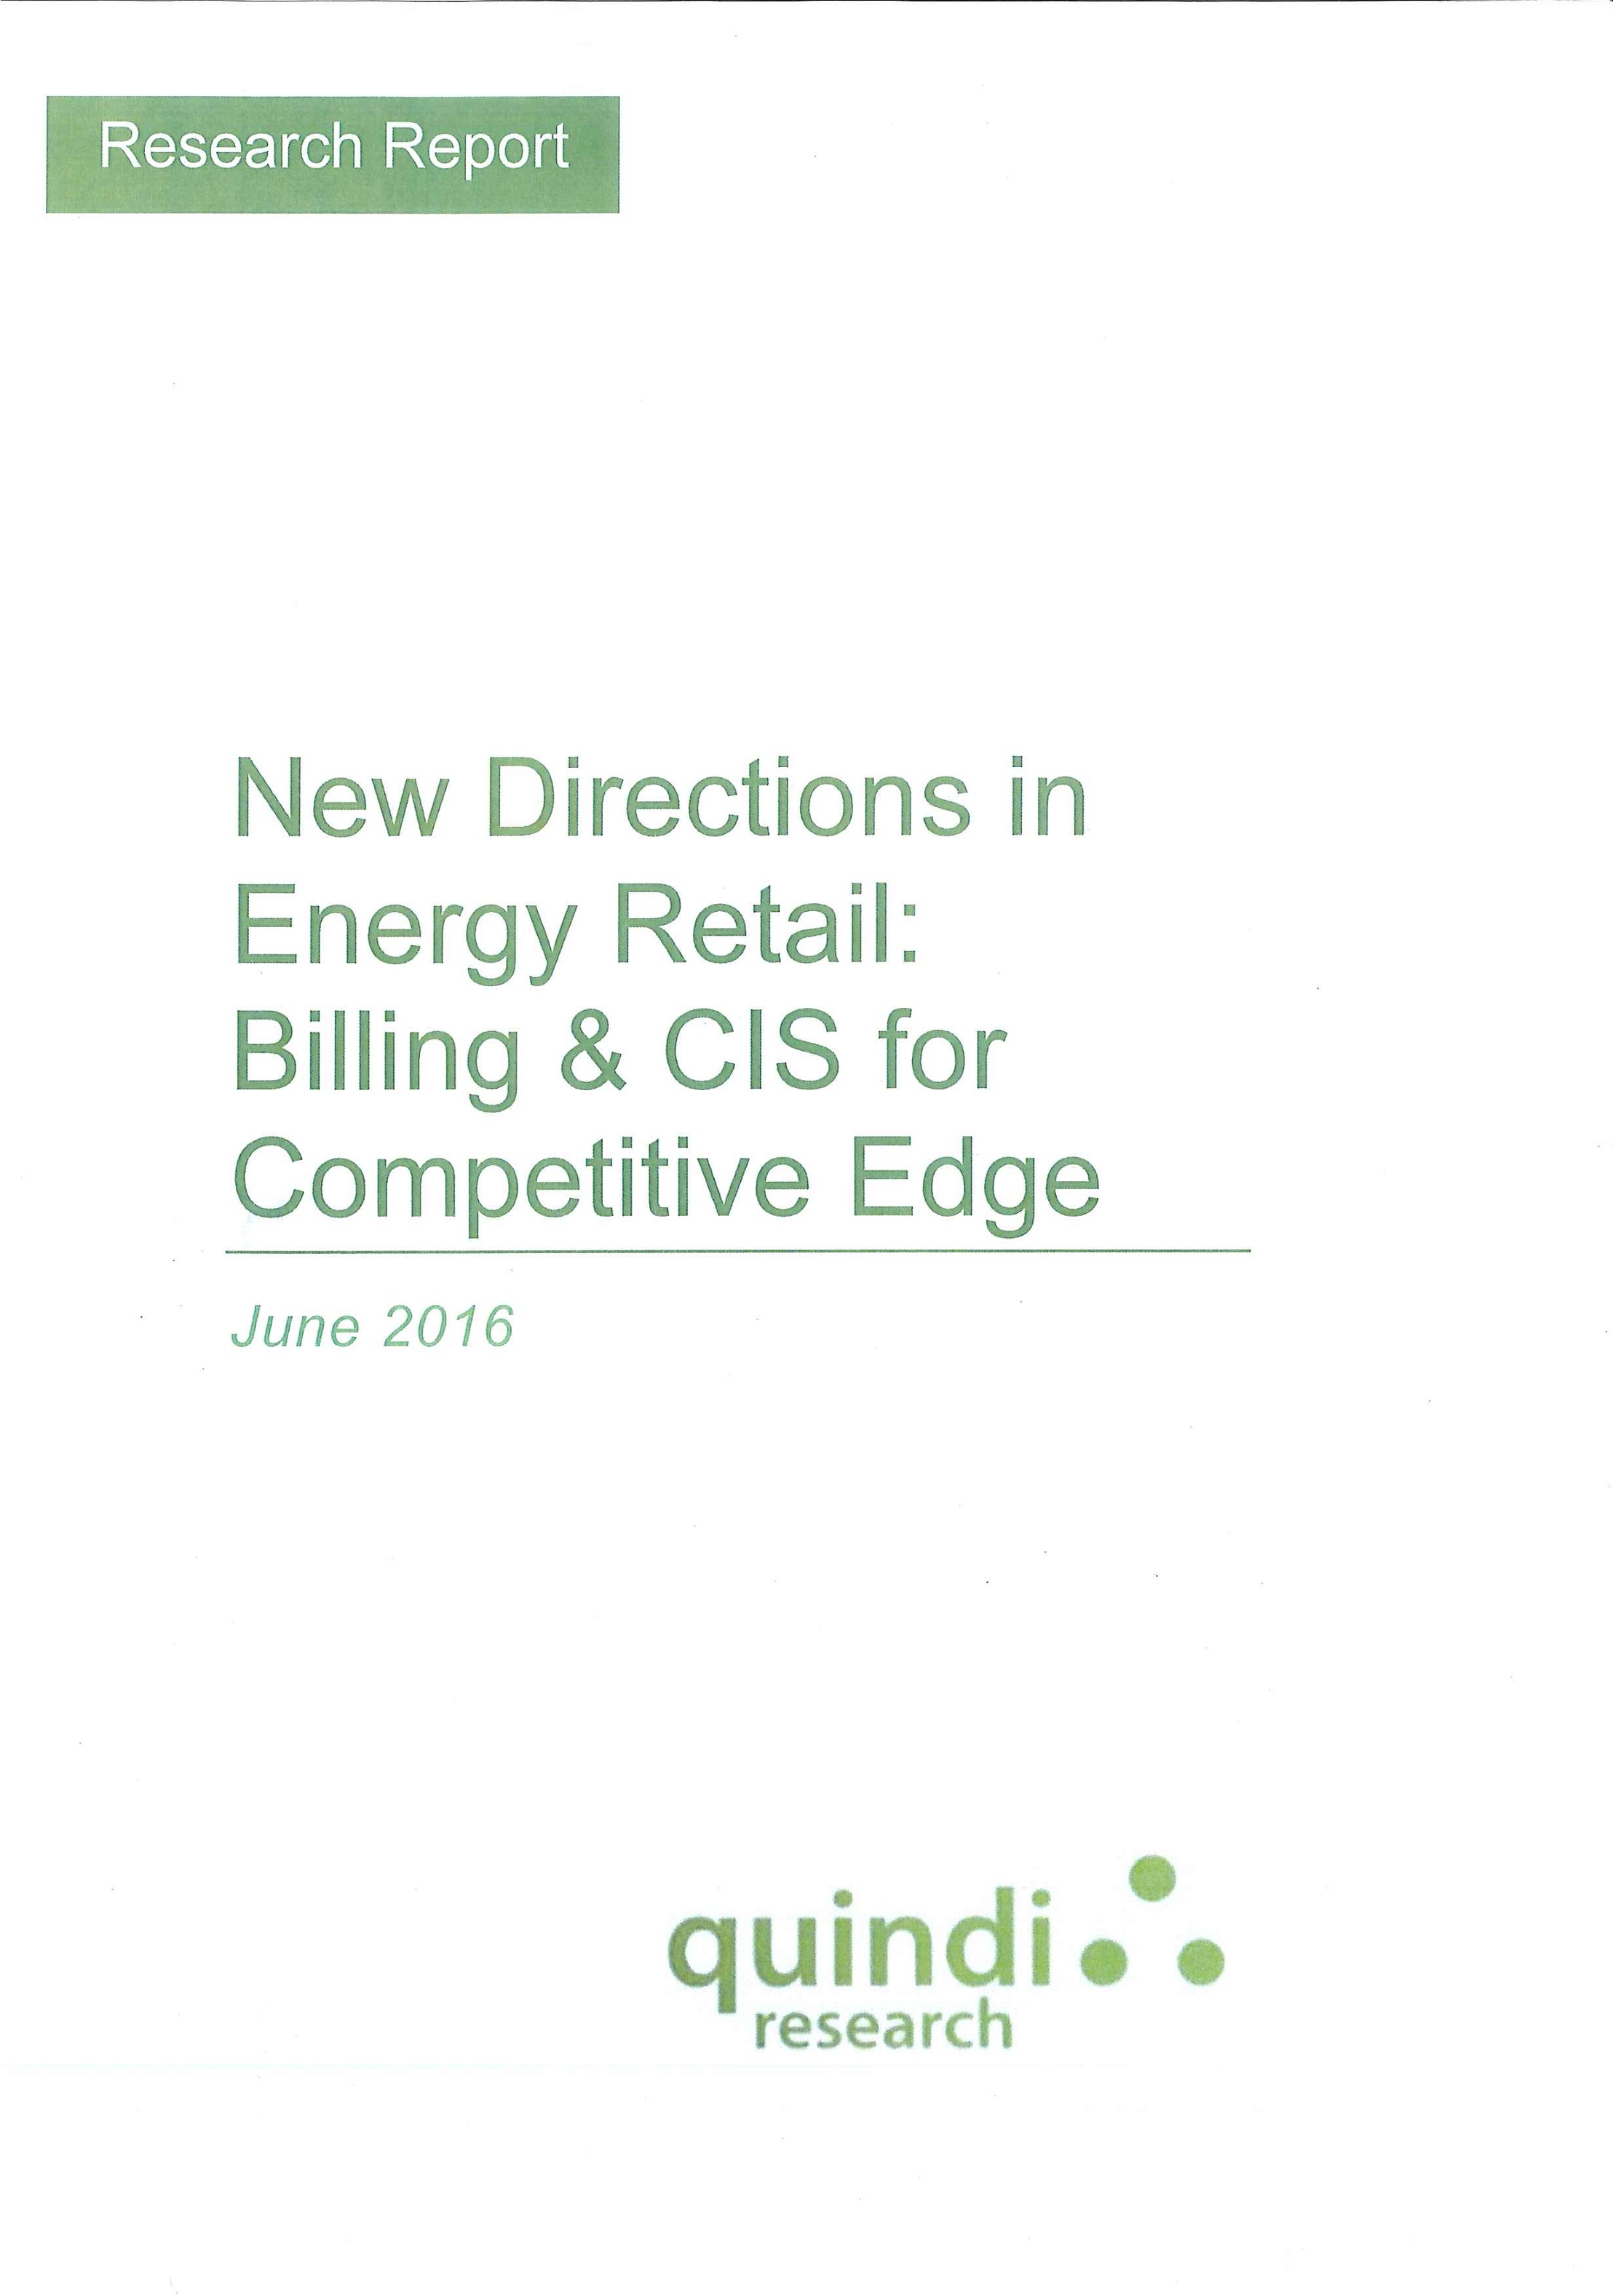 New directions in energy retail [e-book]:billing & CIS for competitive edge